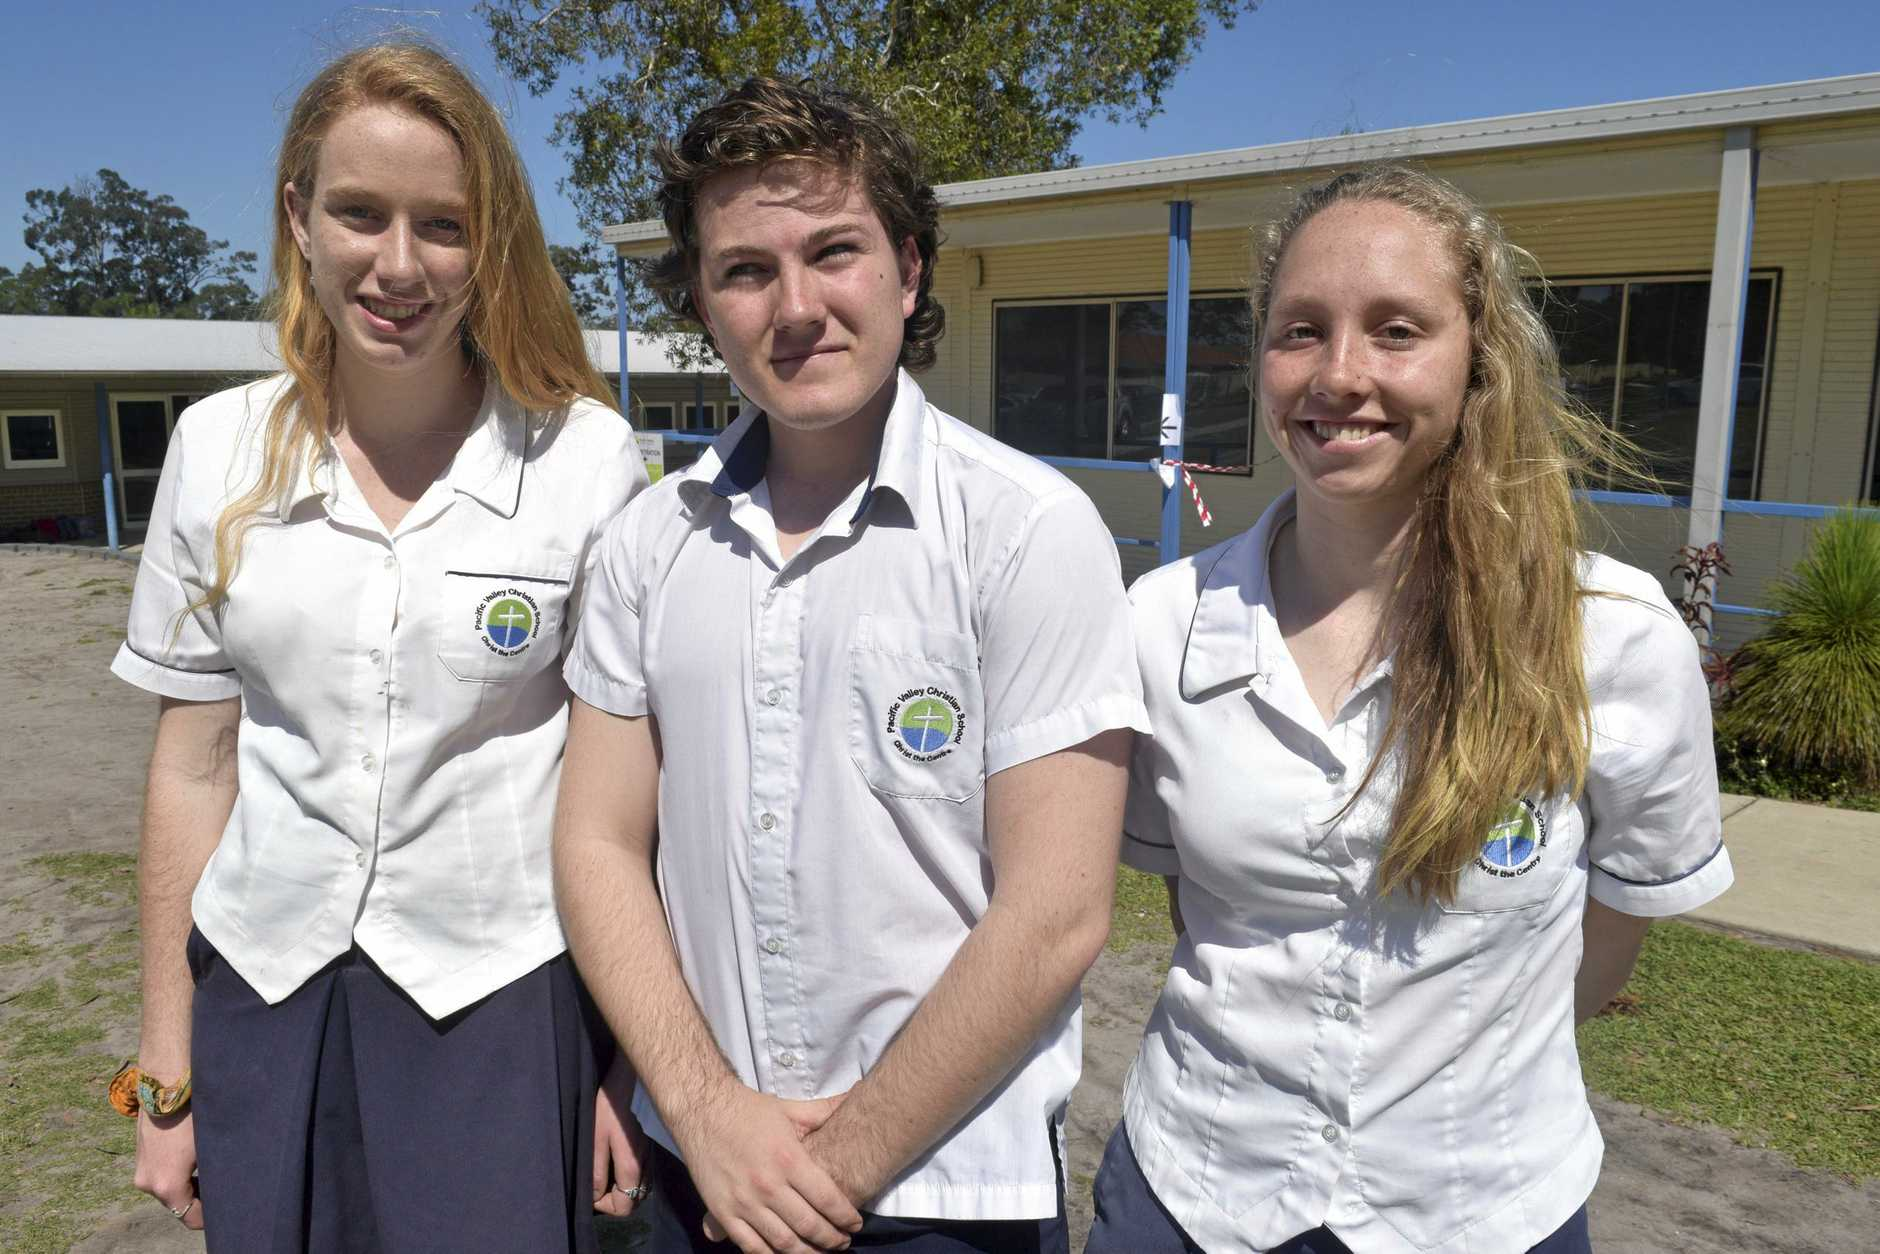 Katie Anne Roan, Joshua Fitzgerald and Georgia Breward from Pacific Valley Christian School.